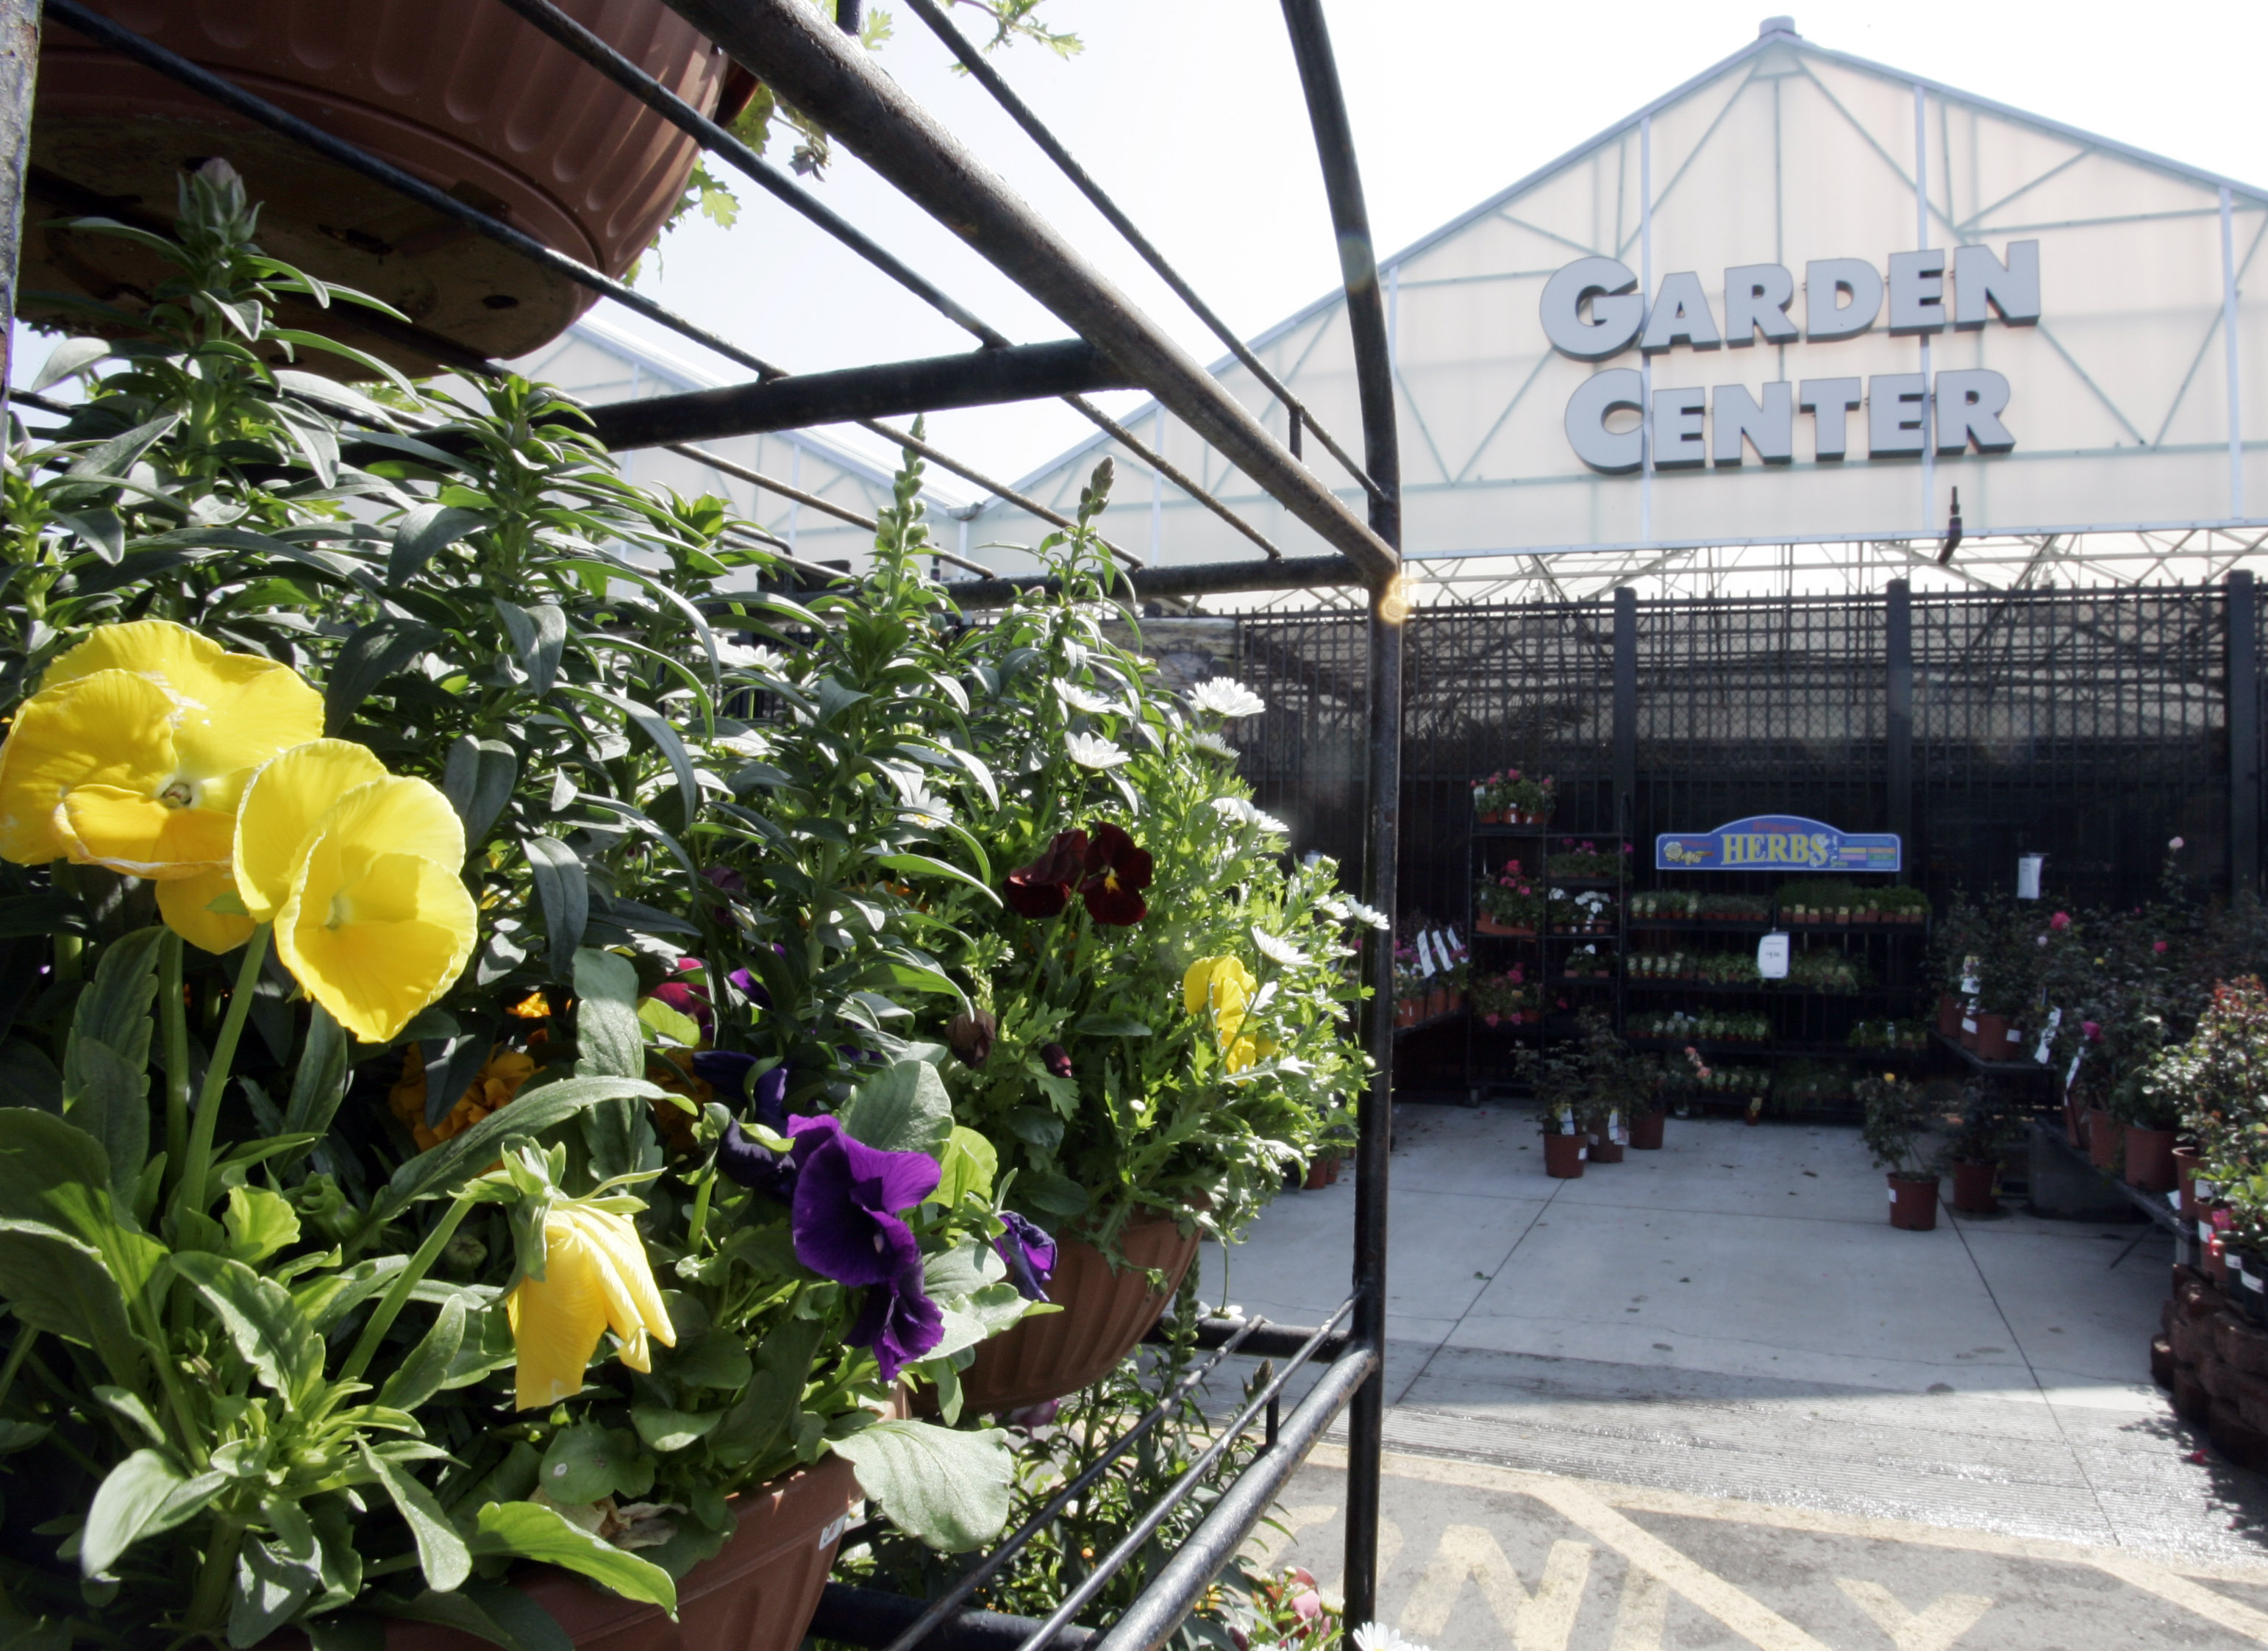 Survey: Higher than average prices found at top local nurseries